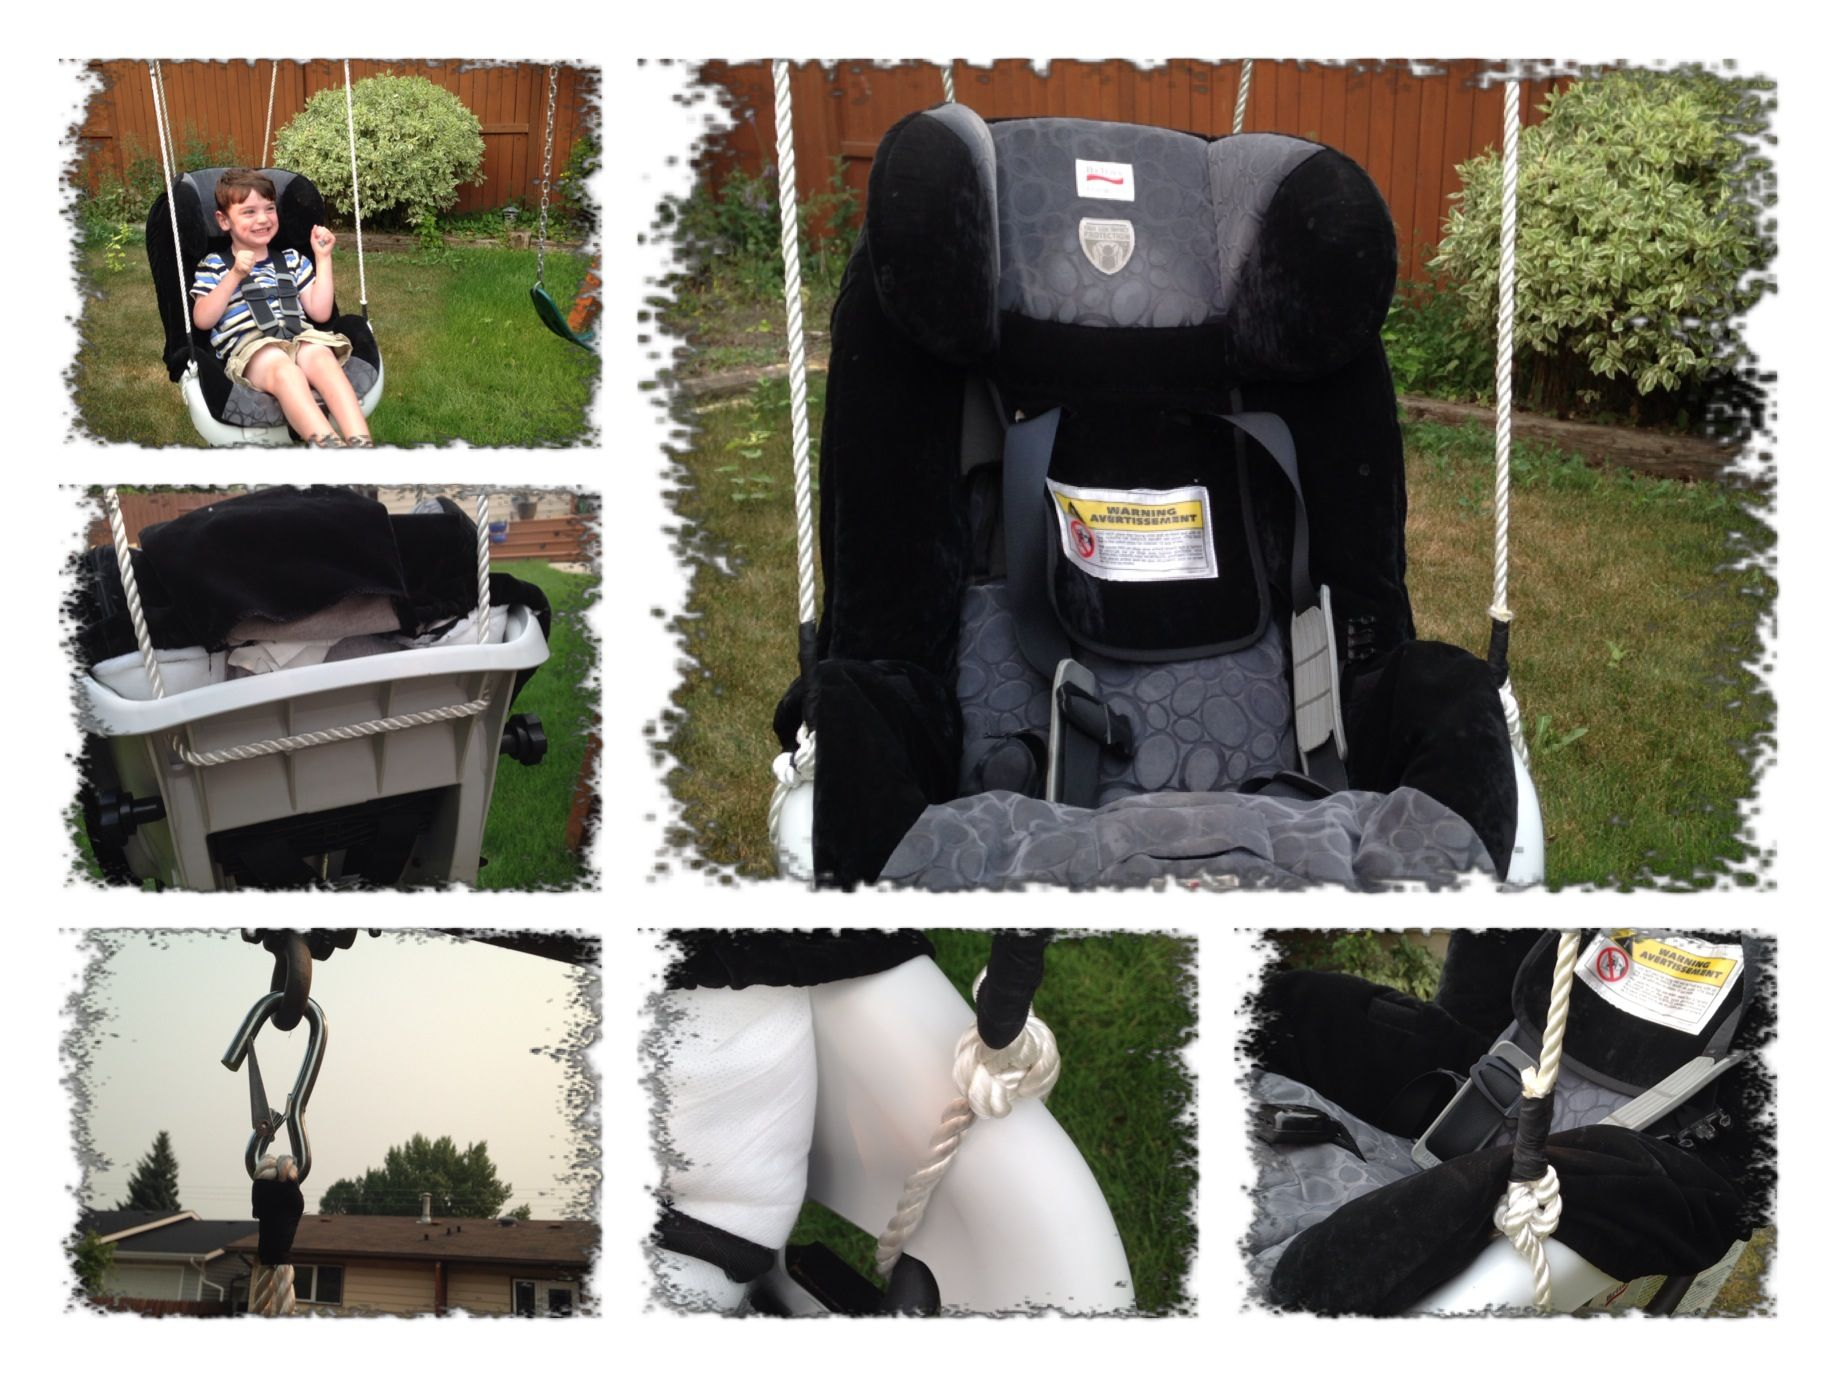 What To Do With Expired Car Seats >> Change An Expired Car Seat Into A Swing It Works Awesome For Our